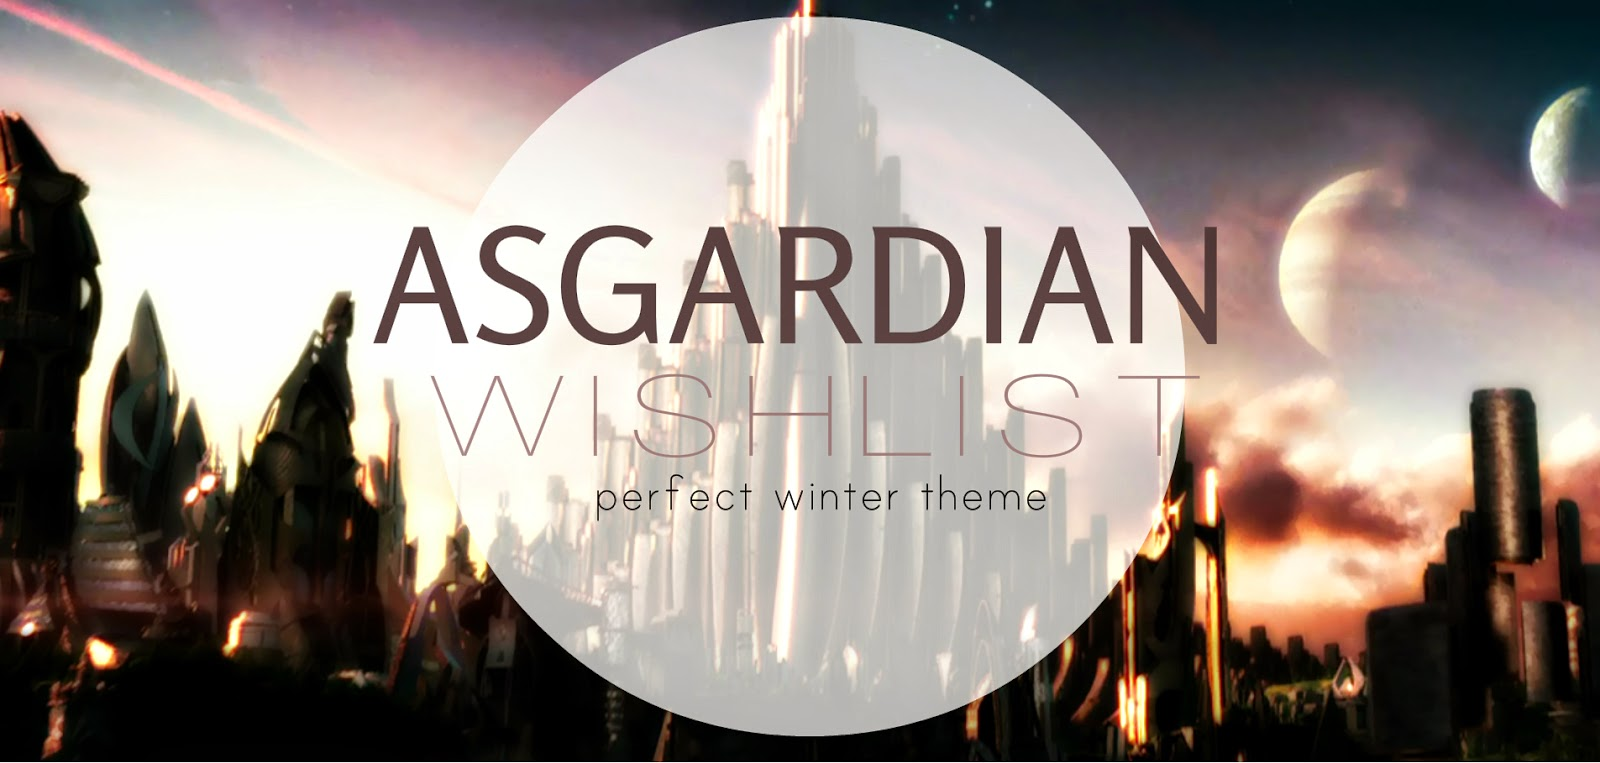 http://kerryshabitat.blogspot.co.uk/2013/12/a-perfect-unique-winter-asgardian.html